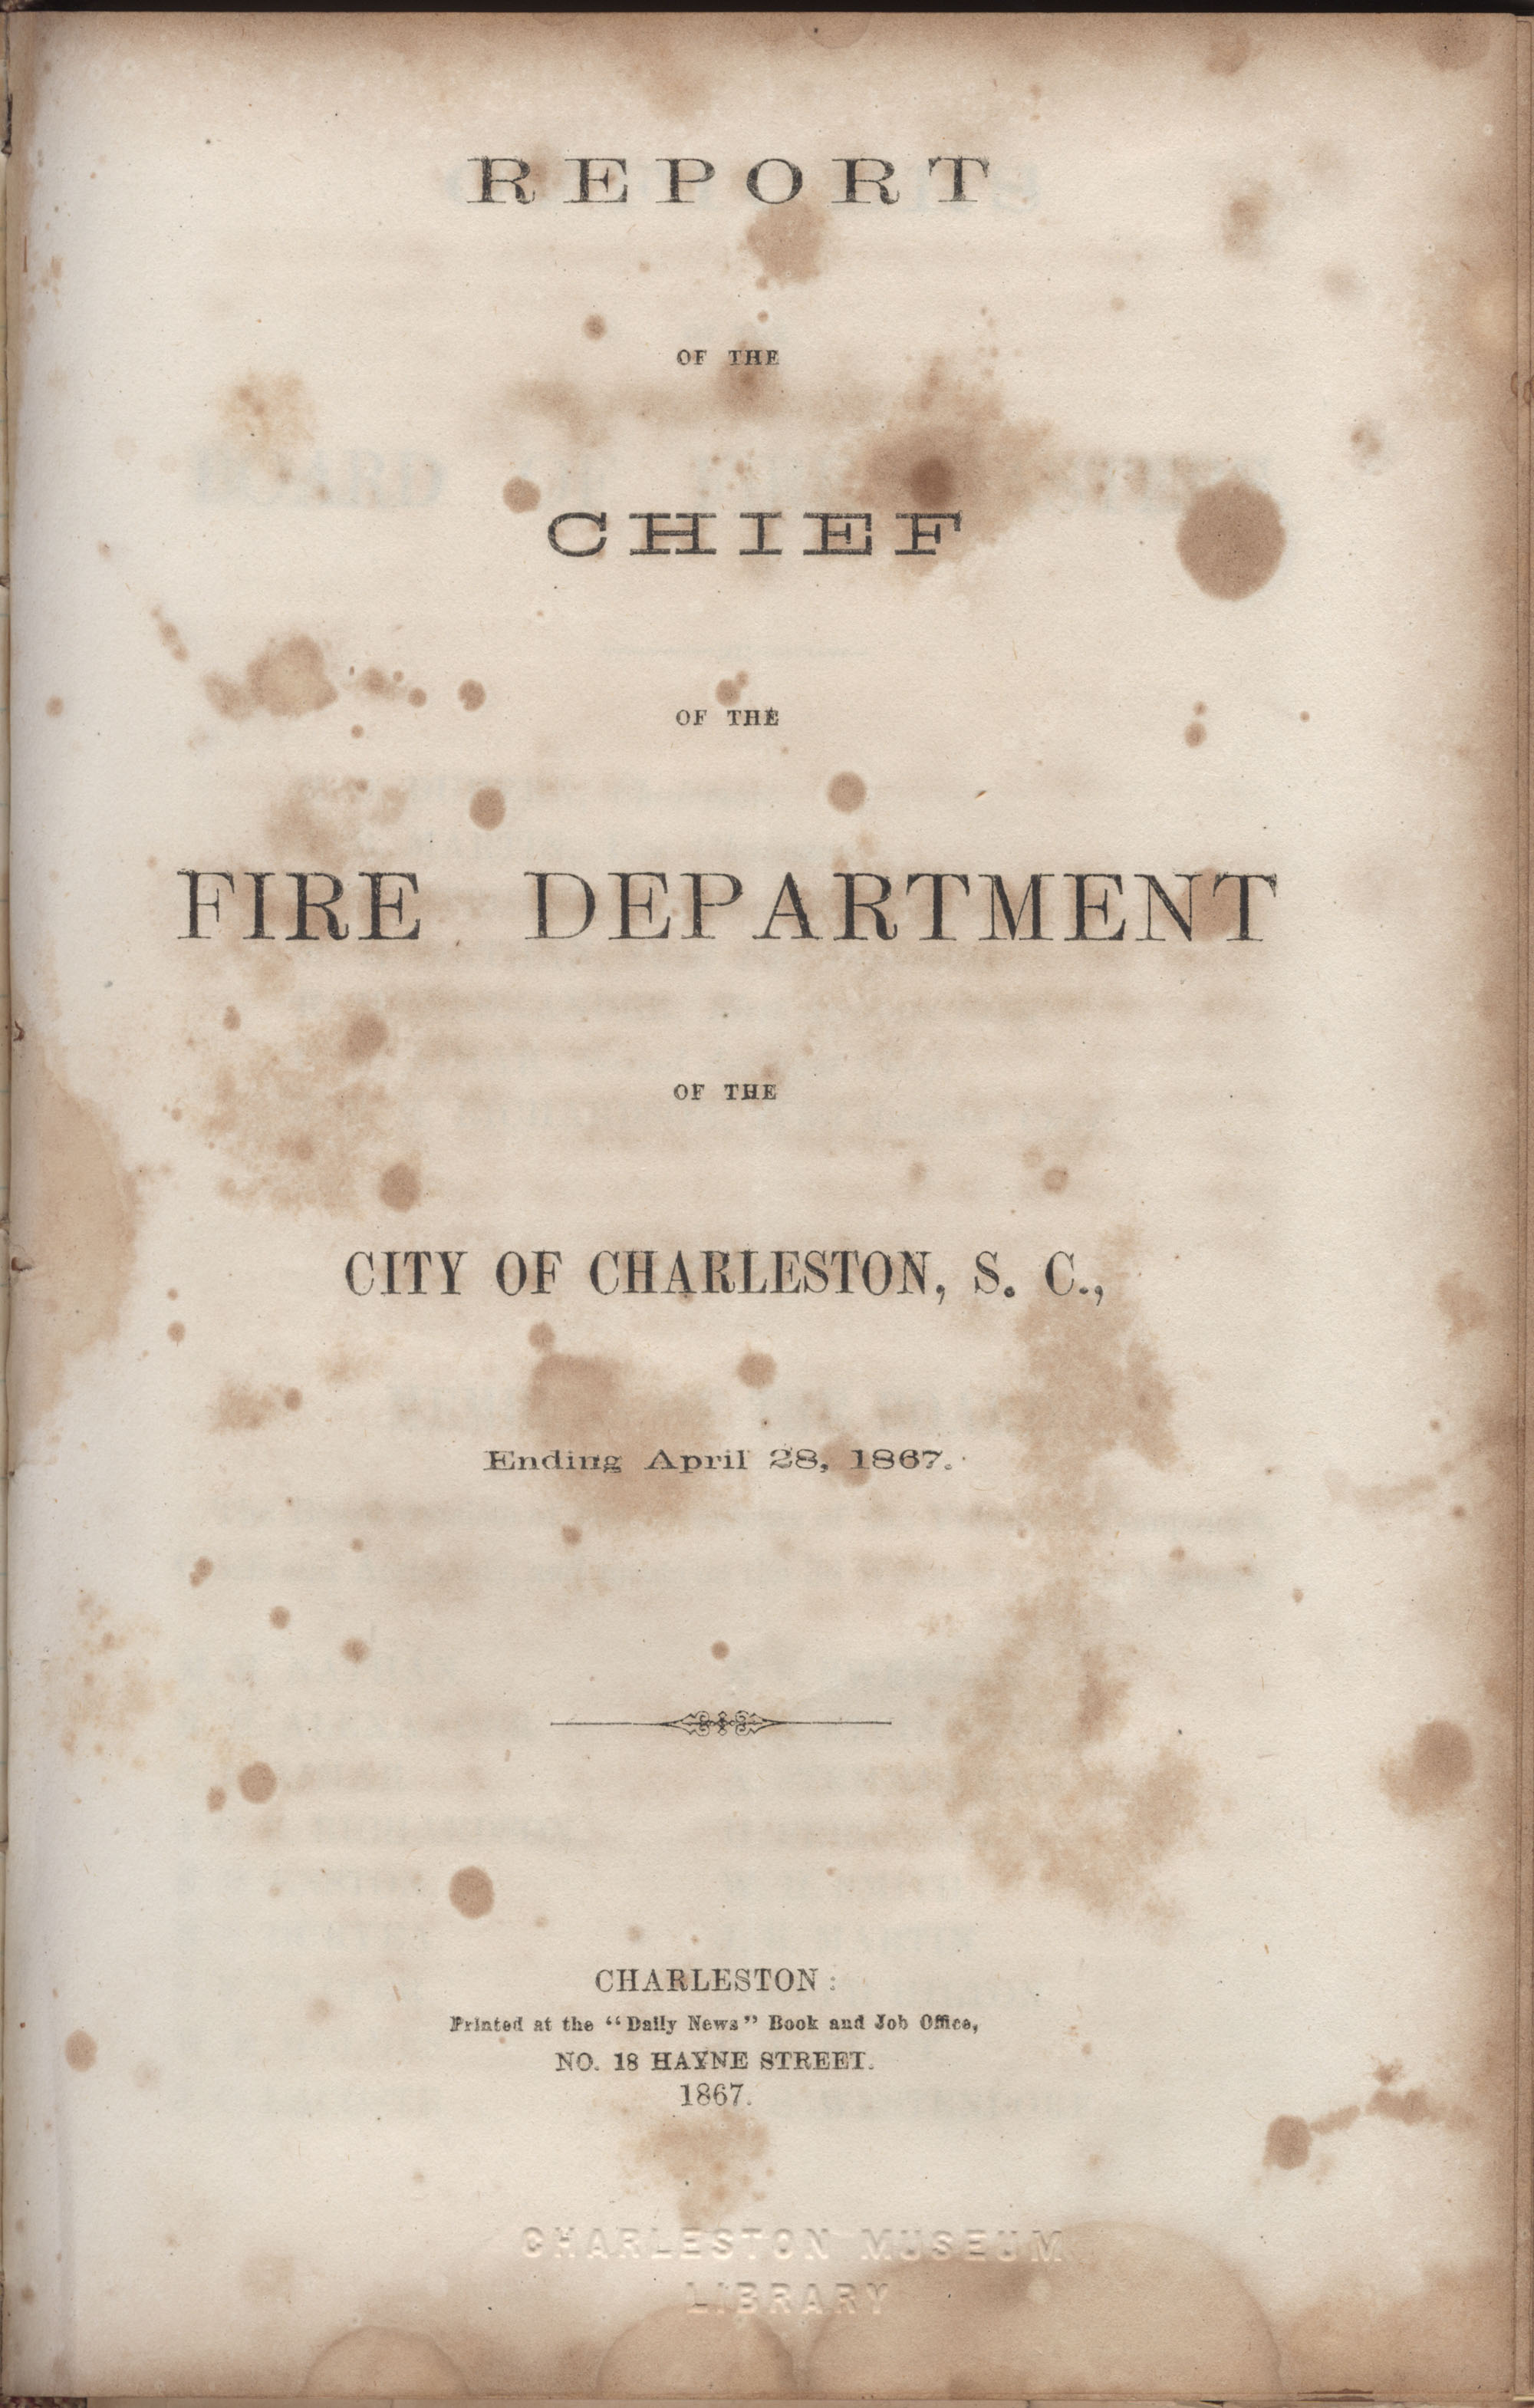 Annual Report of the Chief of the Fire Department of the City of Charleston, page 145